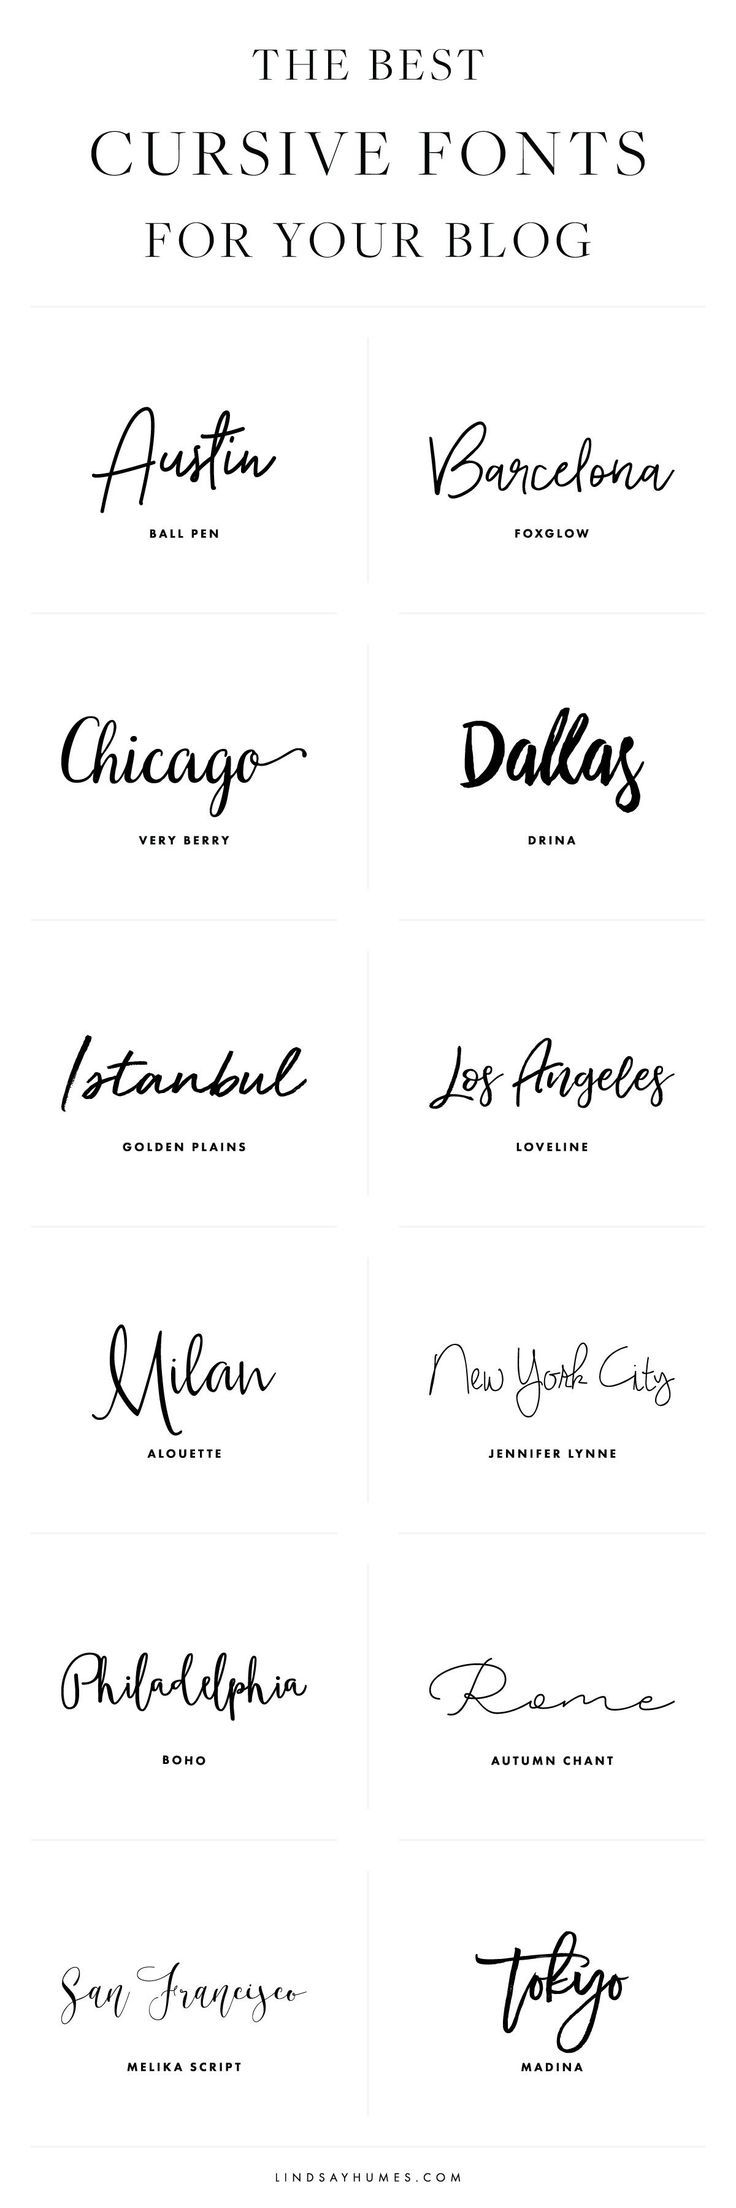 The best italic sources for your blog.